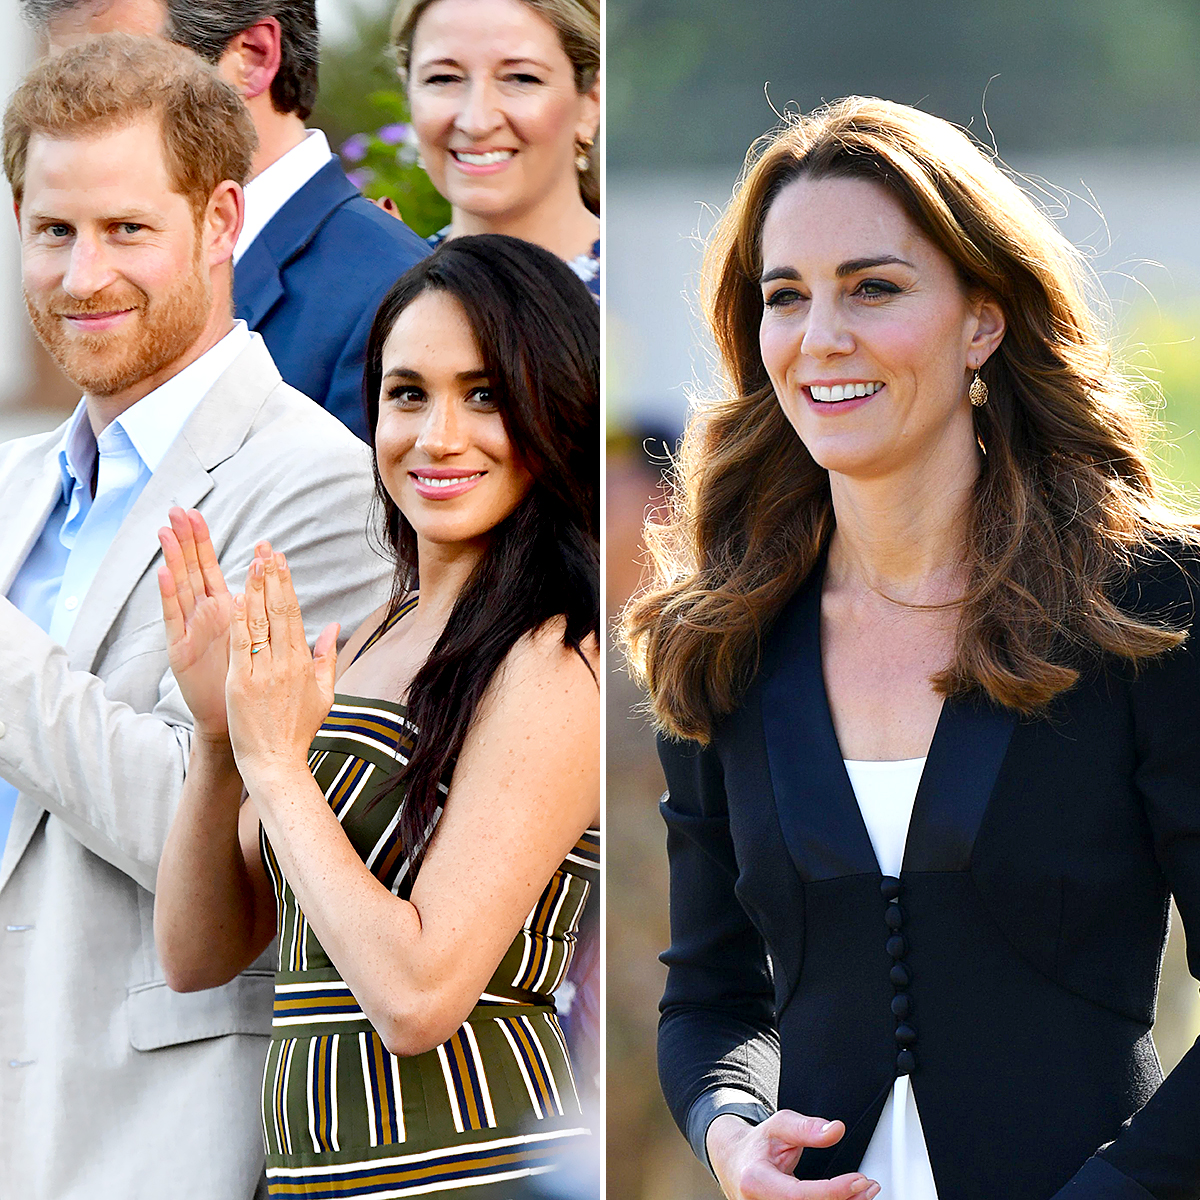 Prince-Harry-and-Duchess-Meghan-Wish-Duchess-Kate-a-Happy-Birthday-After-Stepping-Down-From-the-Royal-Family-2